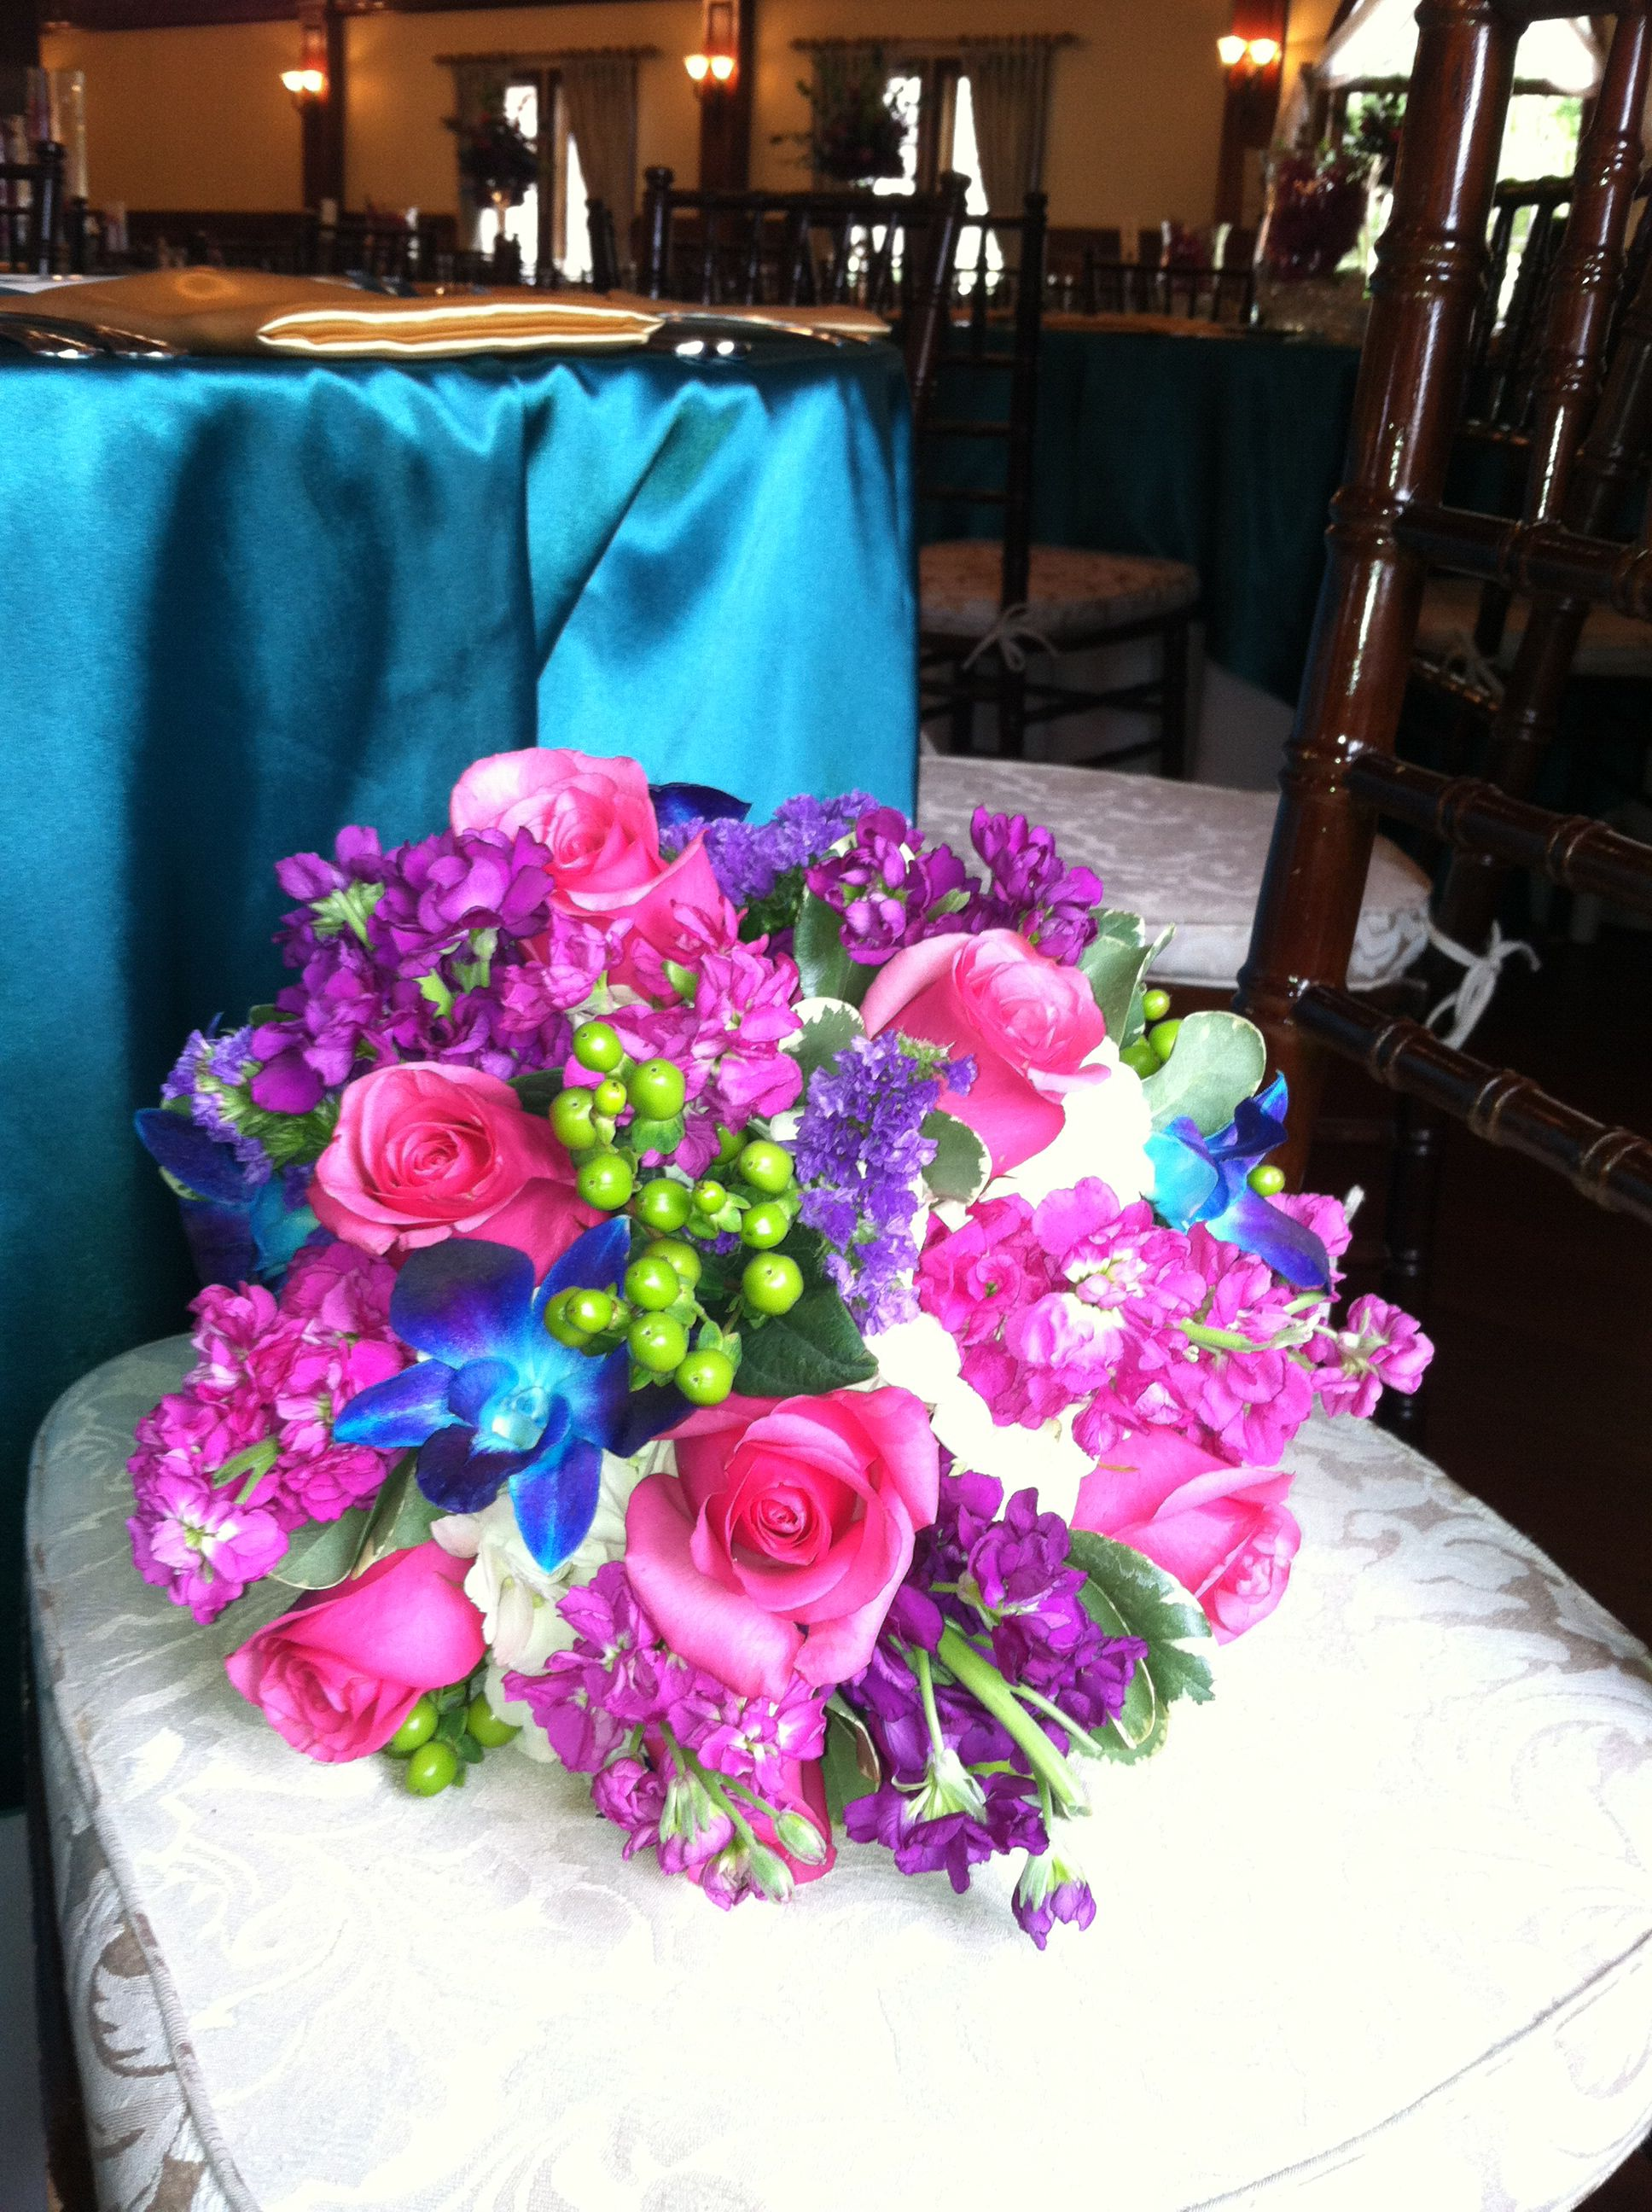 Peacock wedding . The bold color in this bouquet is stunning.